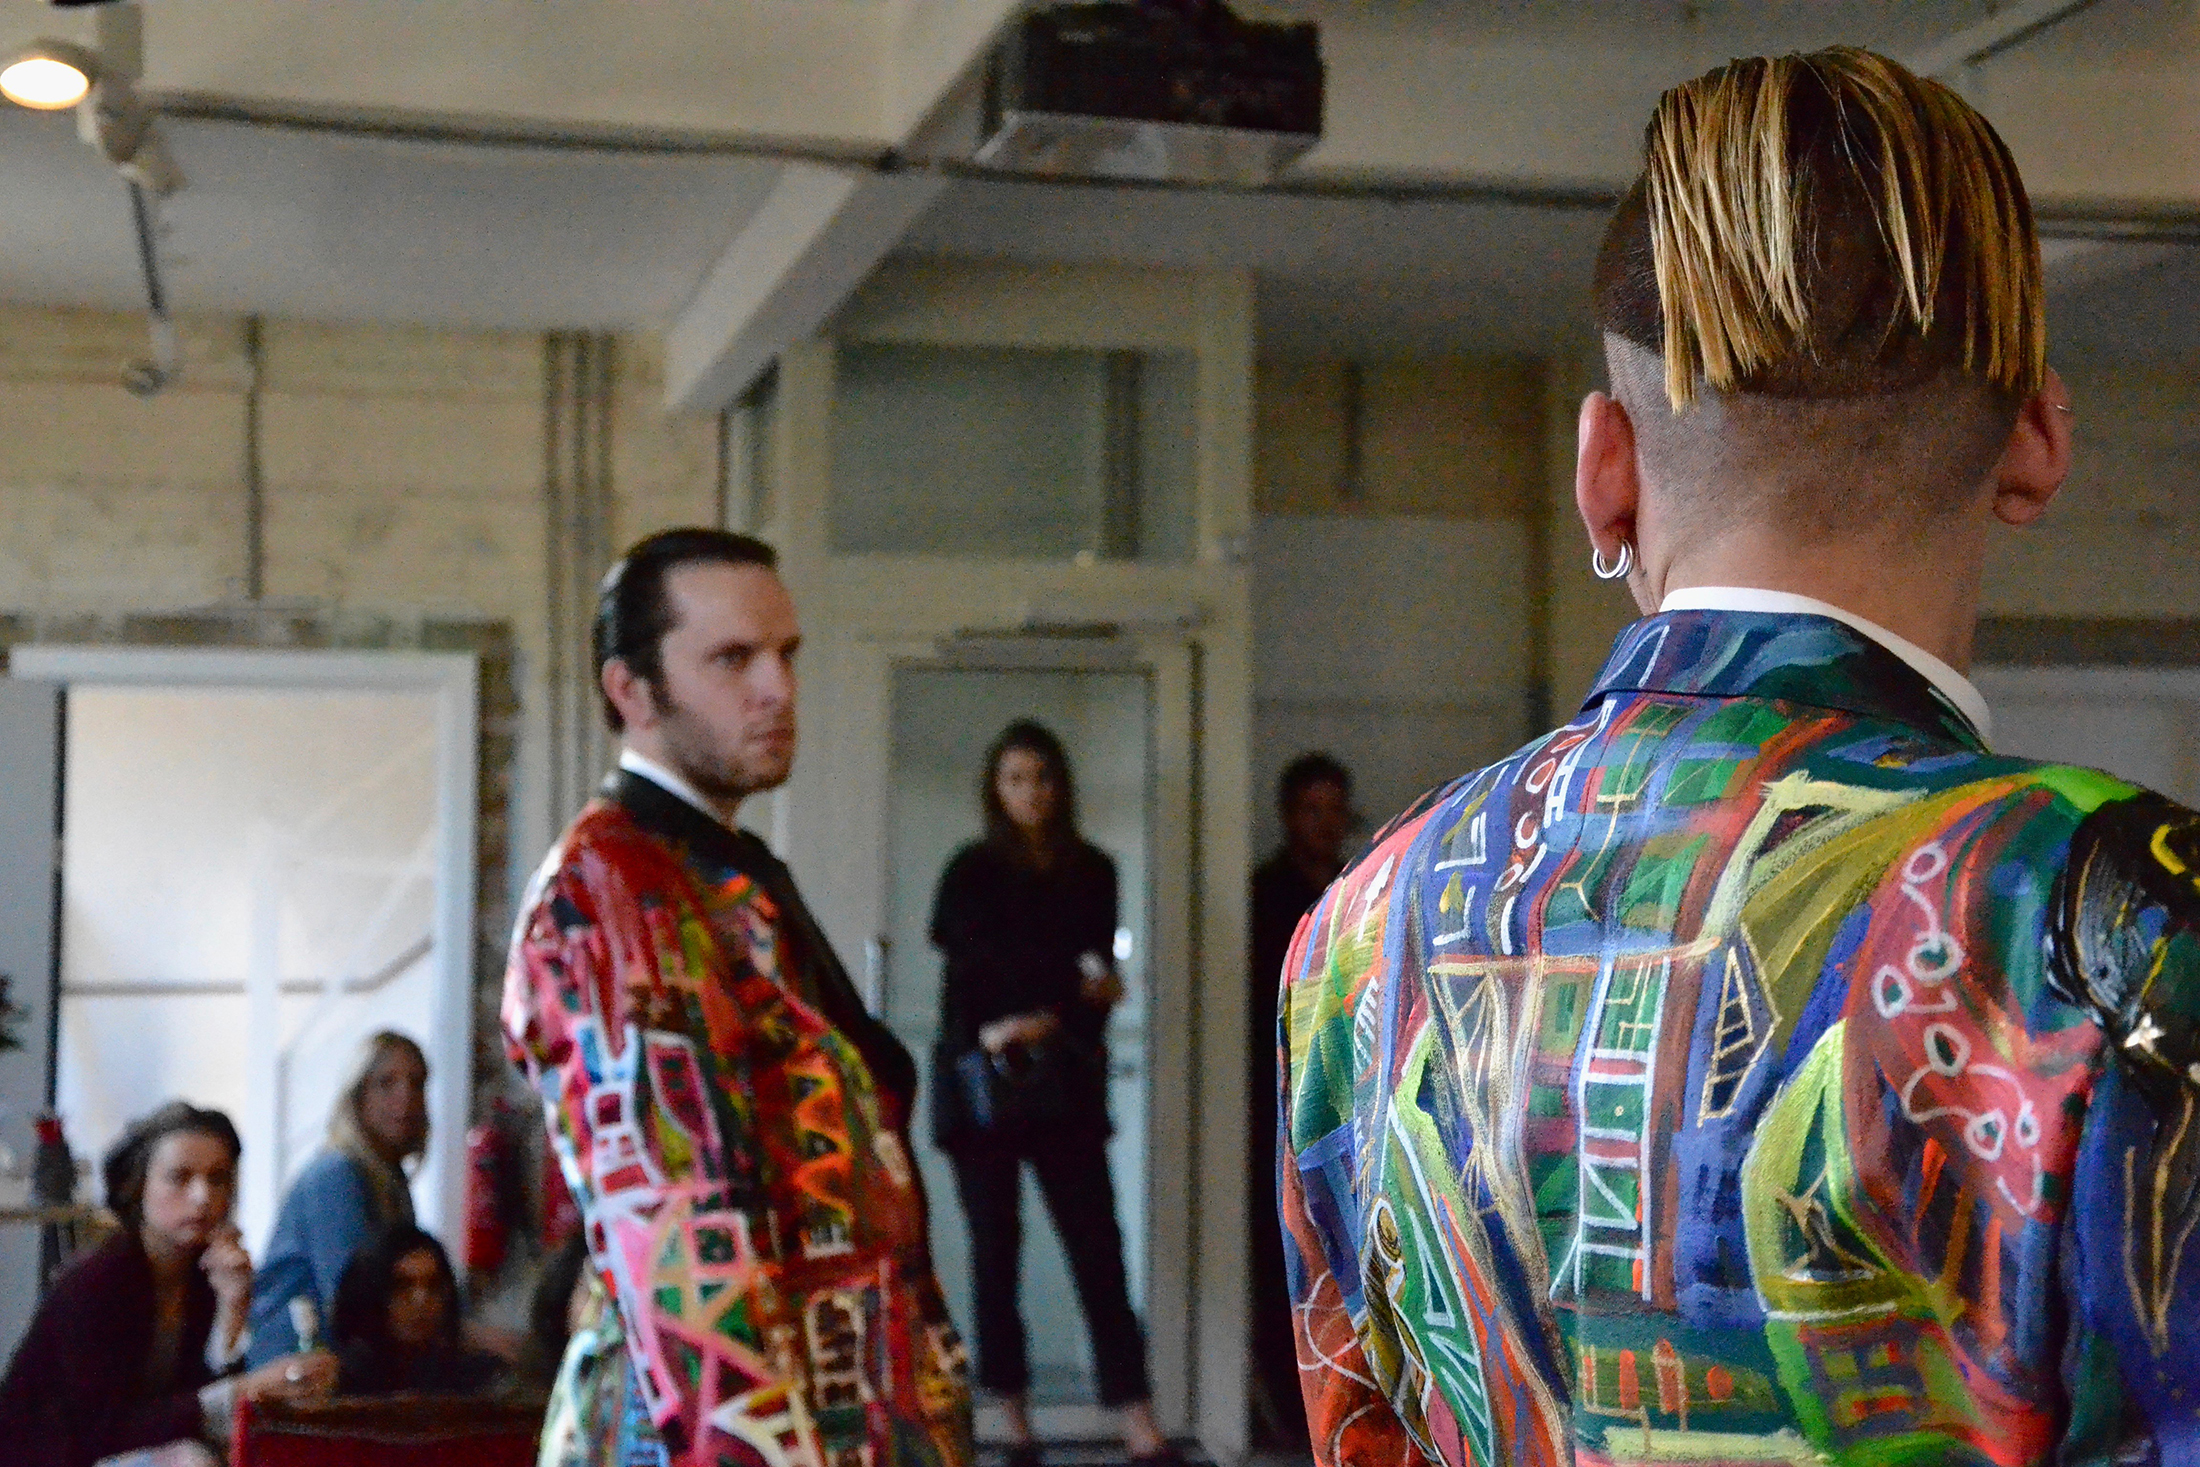 Two male identified characters stare in each other eyes wearing an extremely colourful jacket